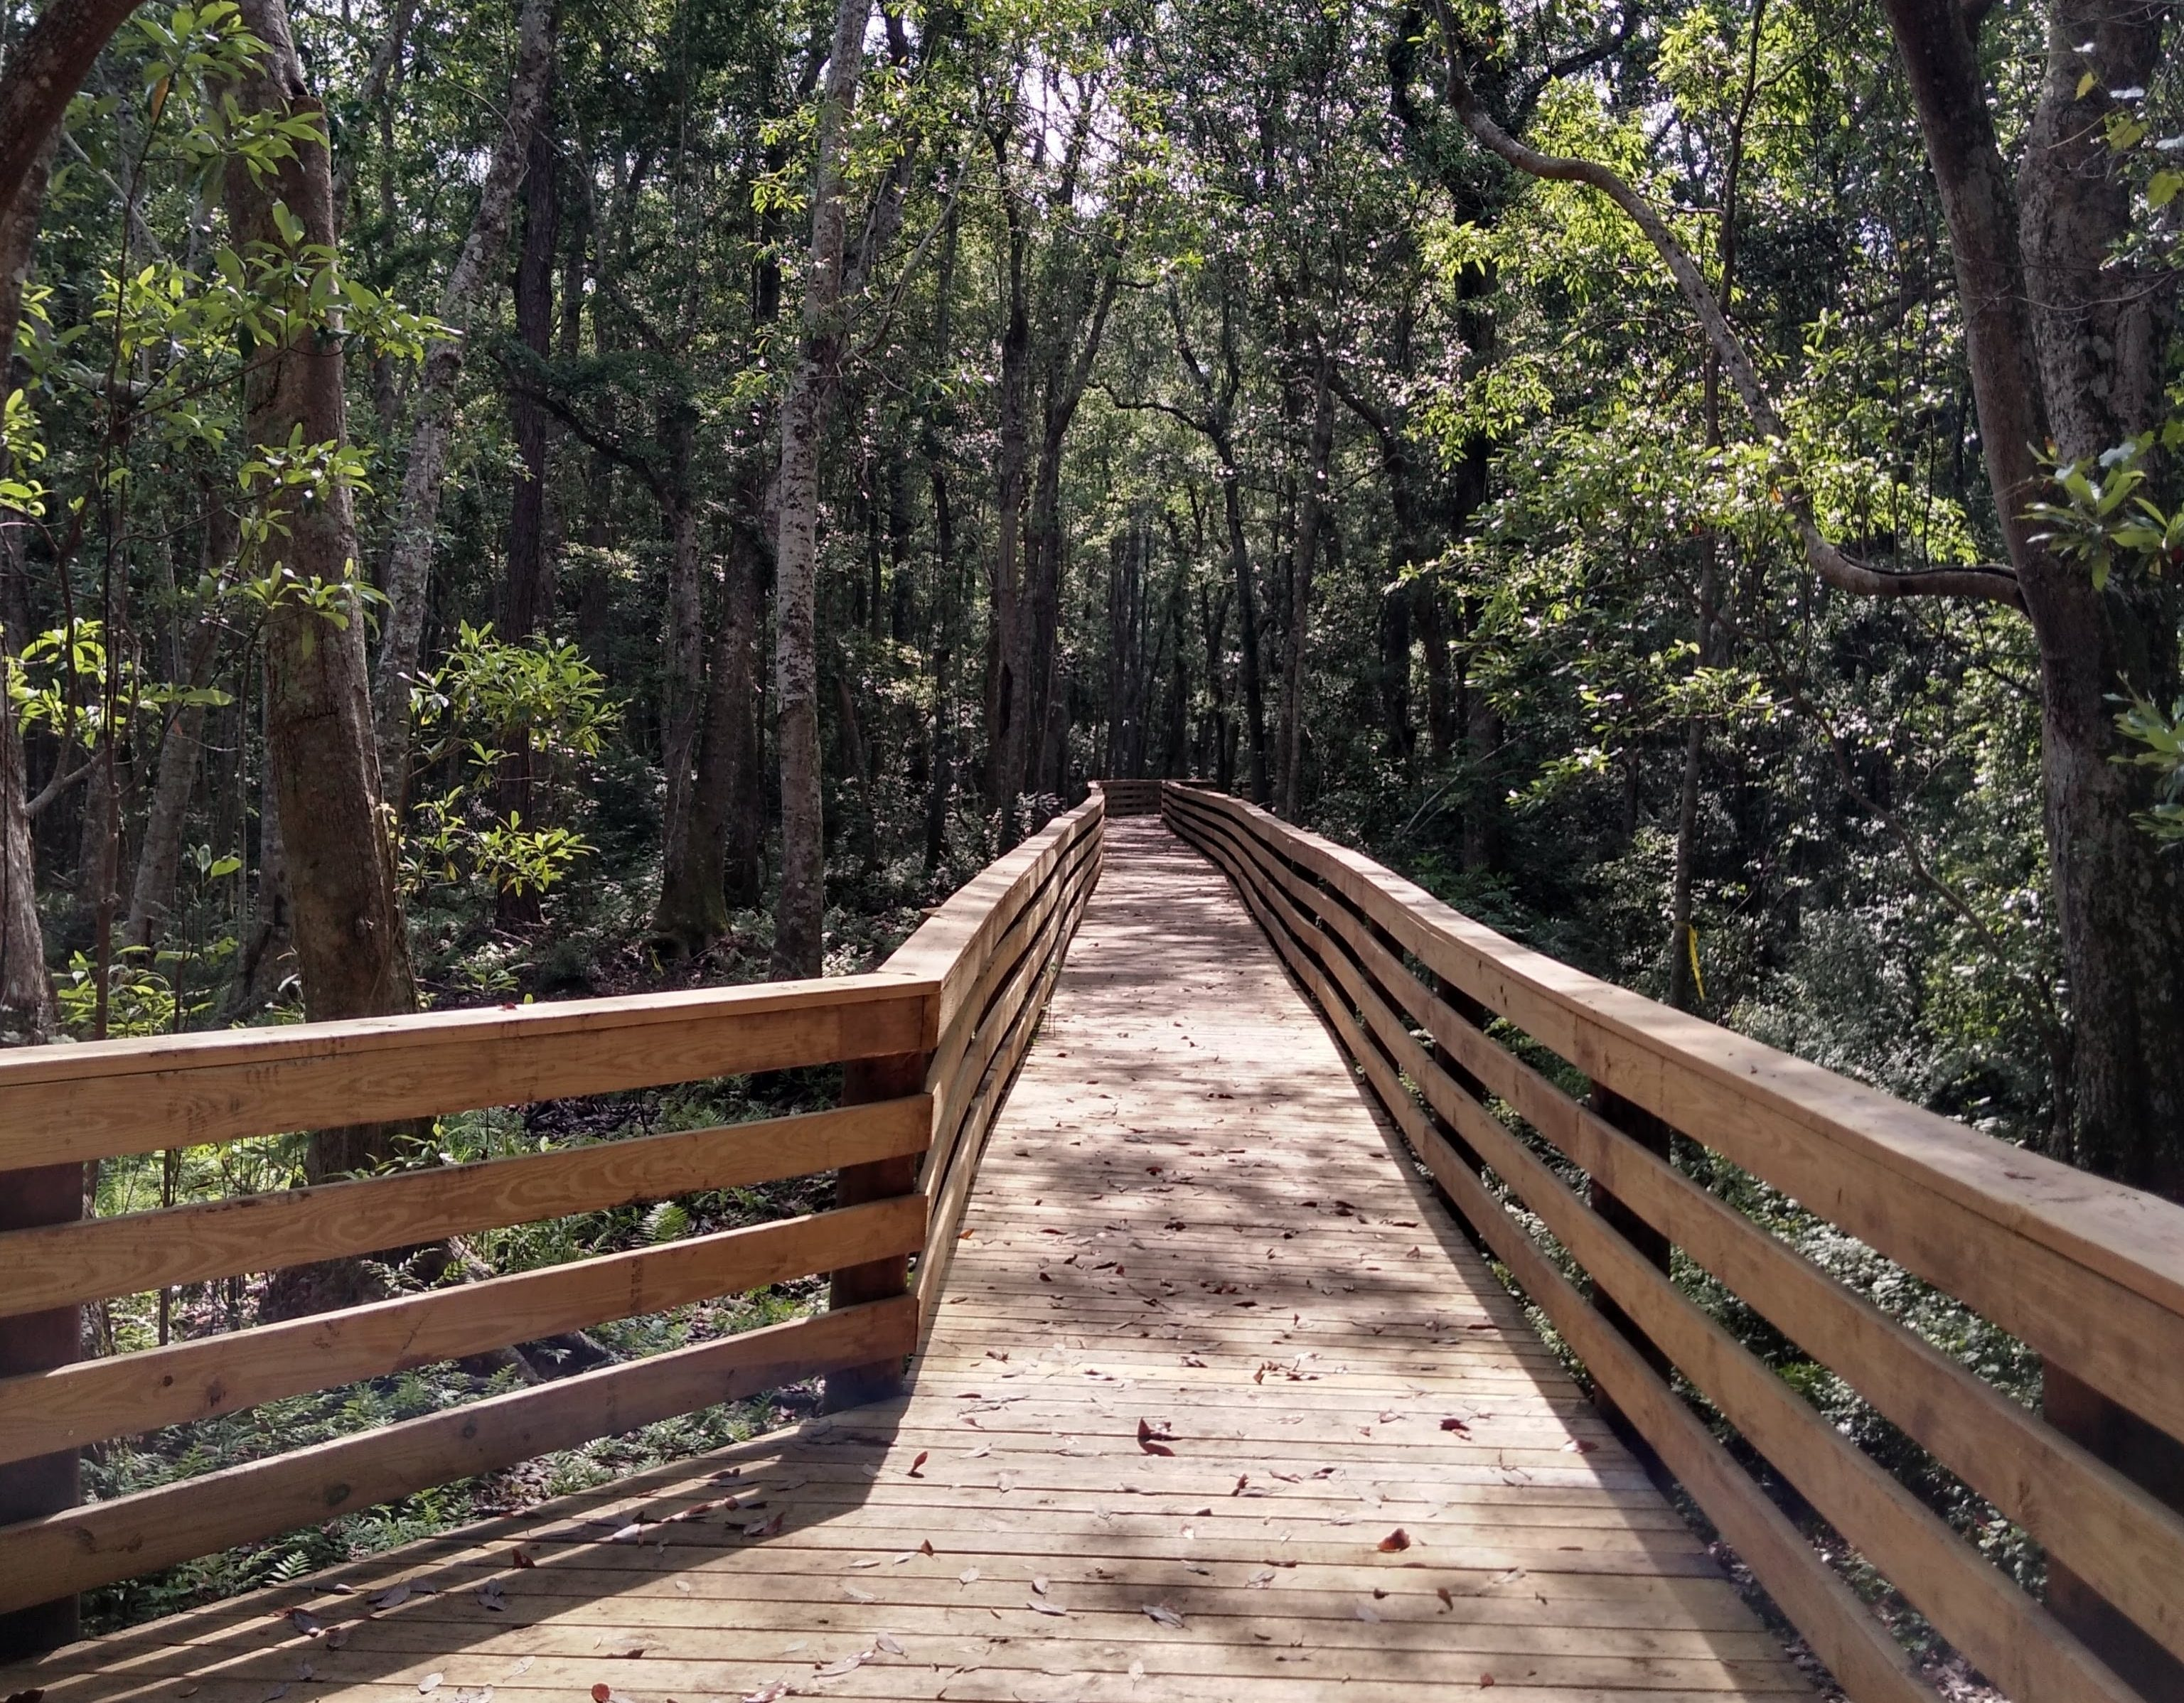 Wooden walkway leads into a forest trail.